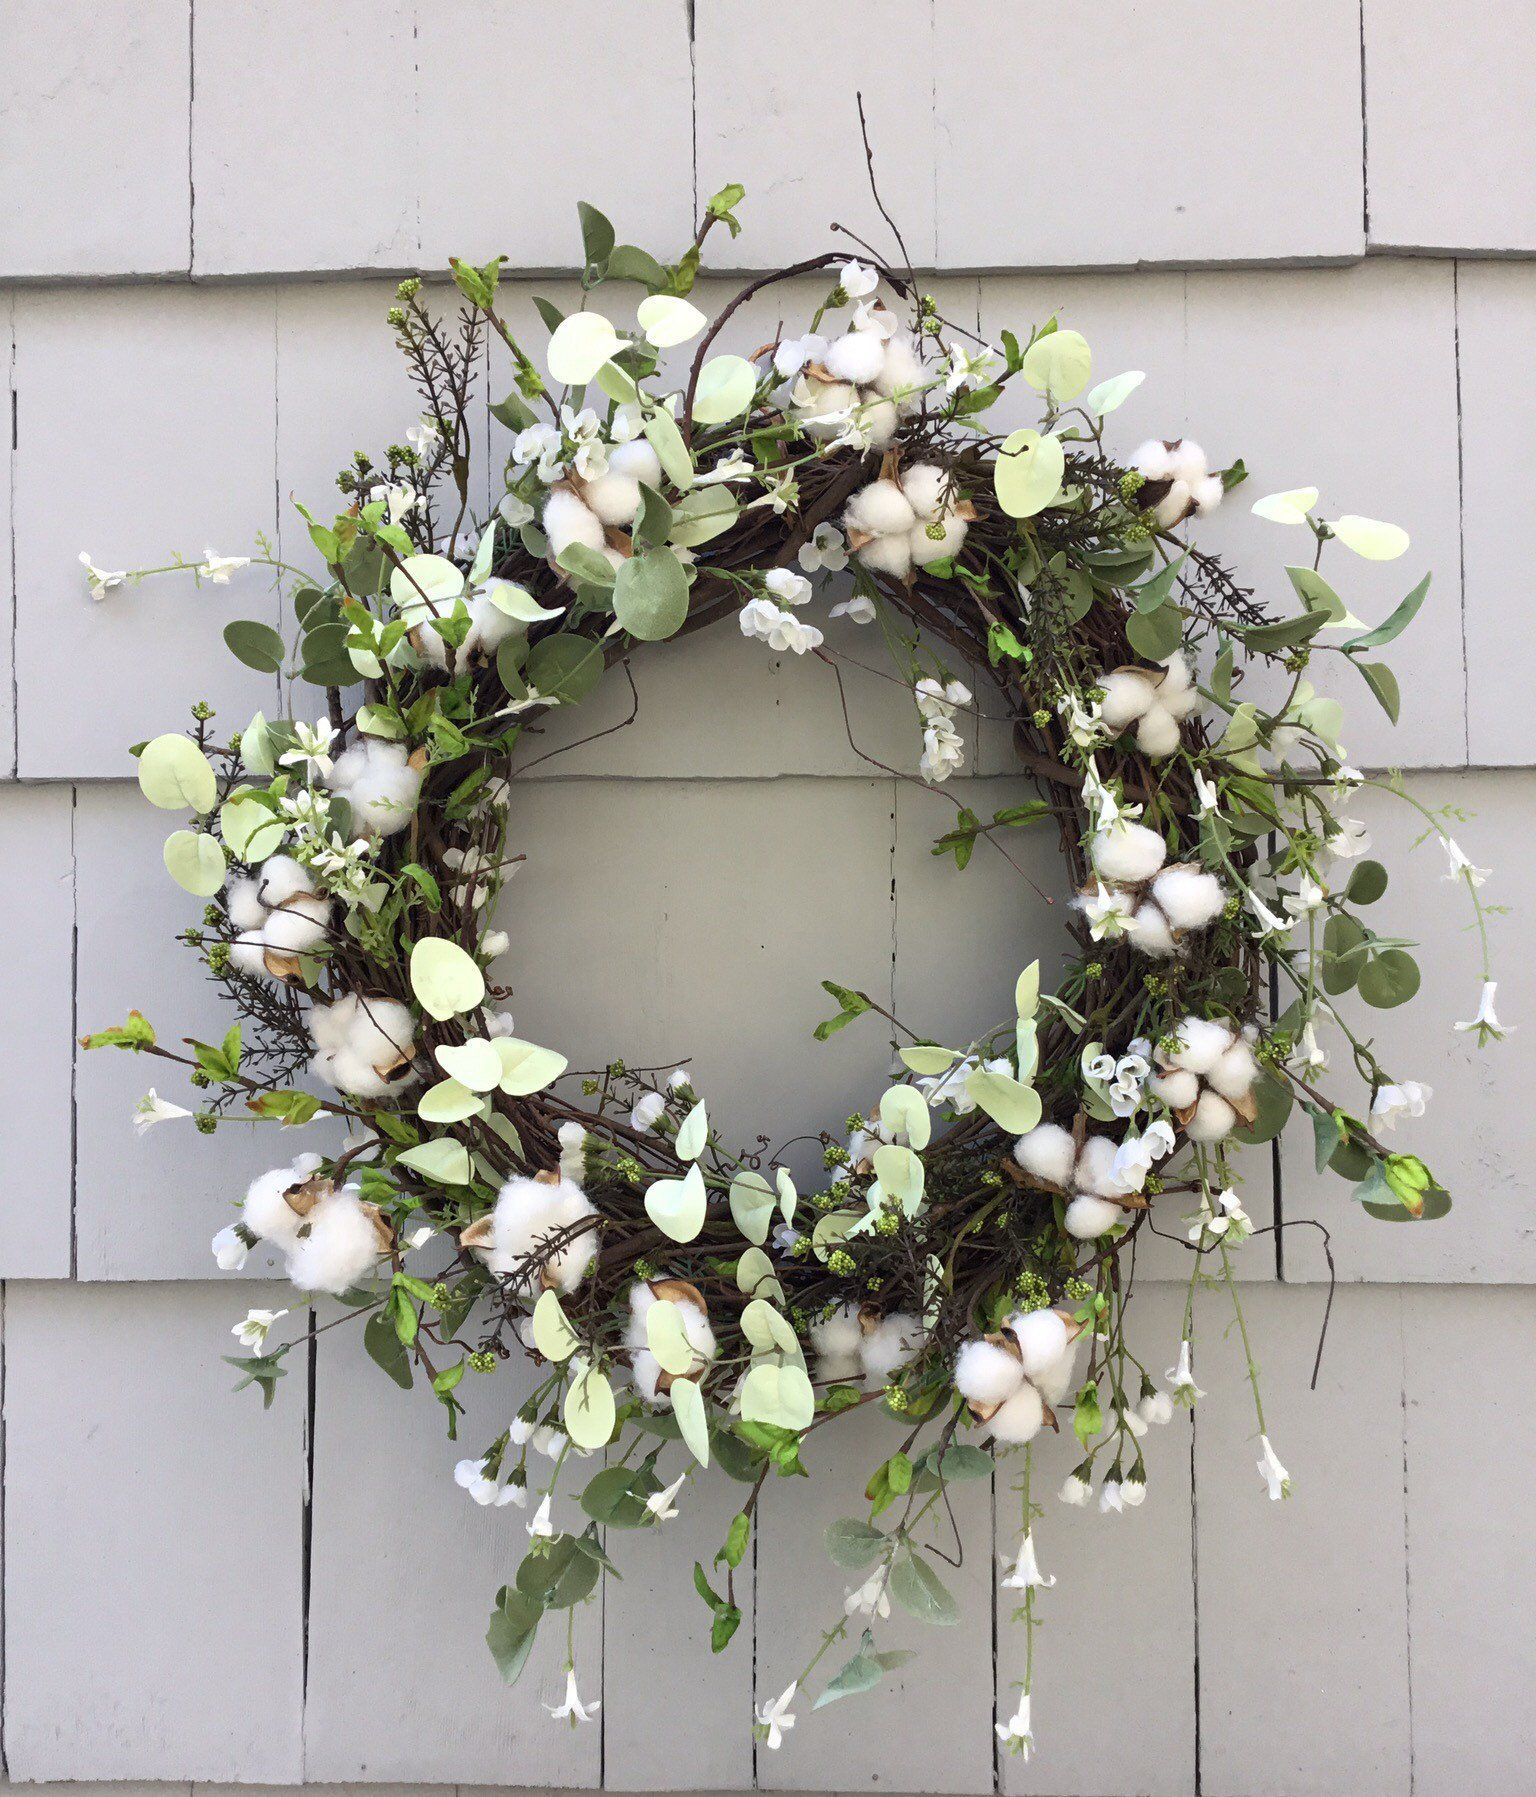 Spring Summer Green And White Wreath With Eucalyptus Cotton Bolls Pale Green Leaves And Small White Flowe White Wreath Faux Floral Arrangement Large Wreath